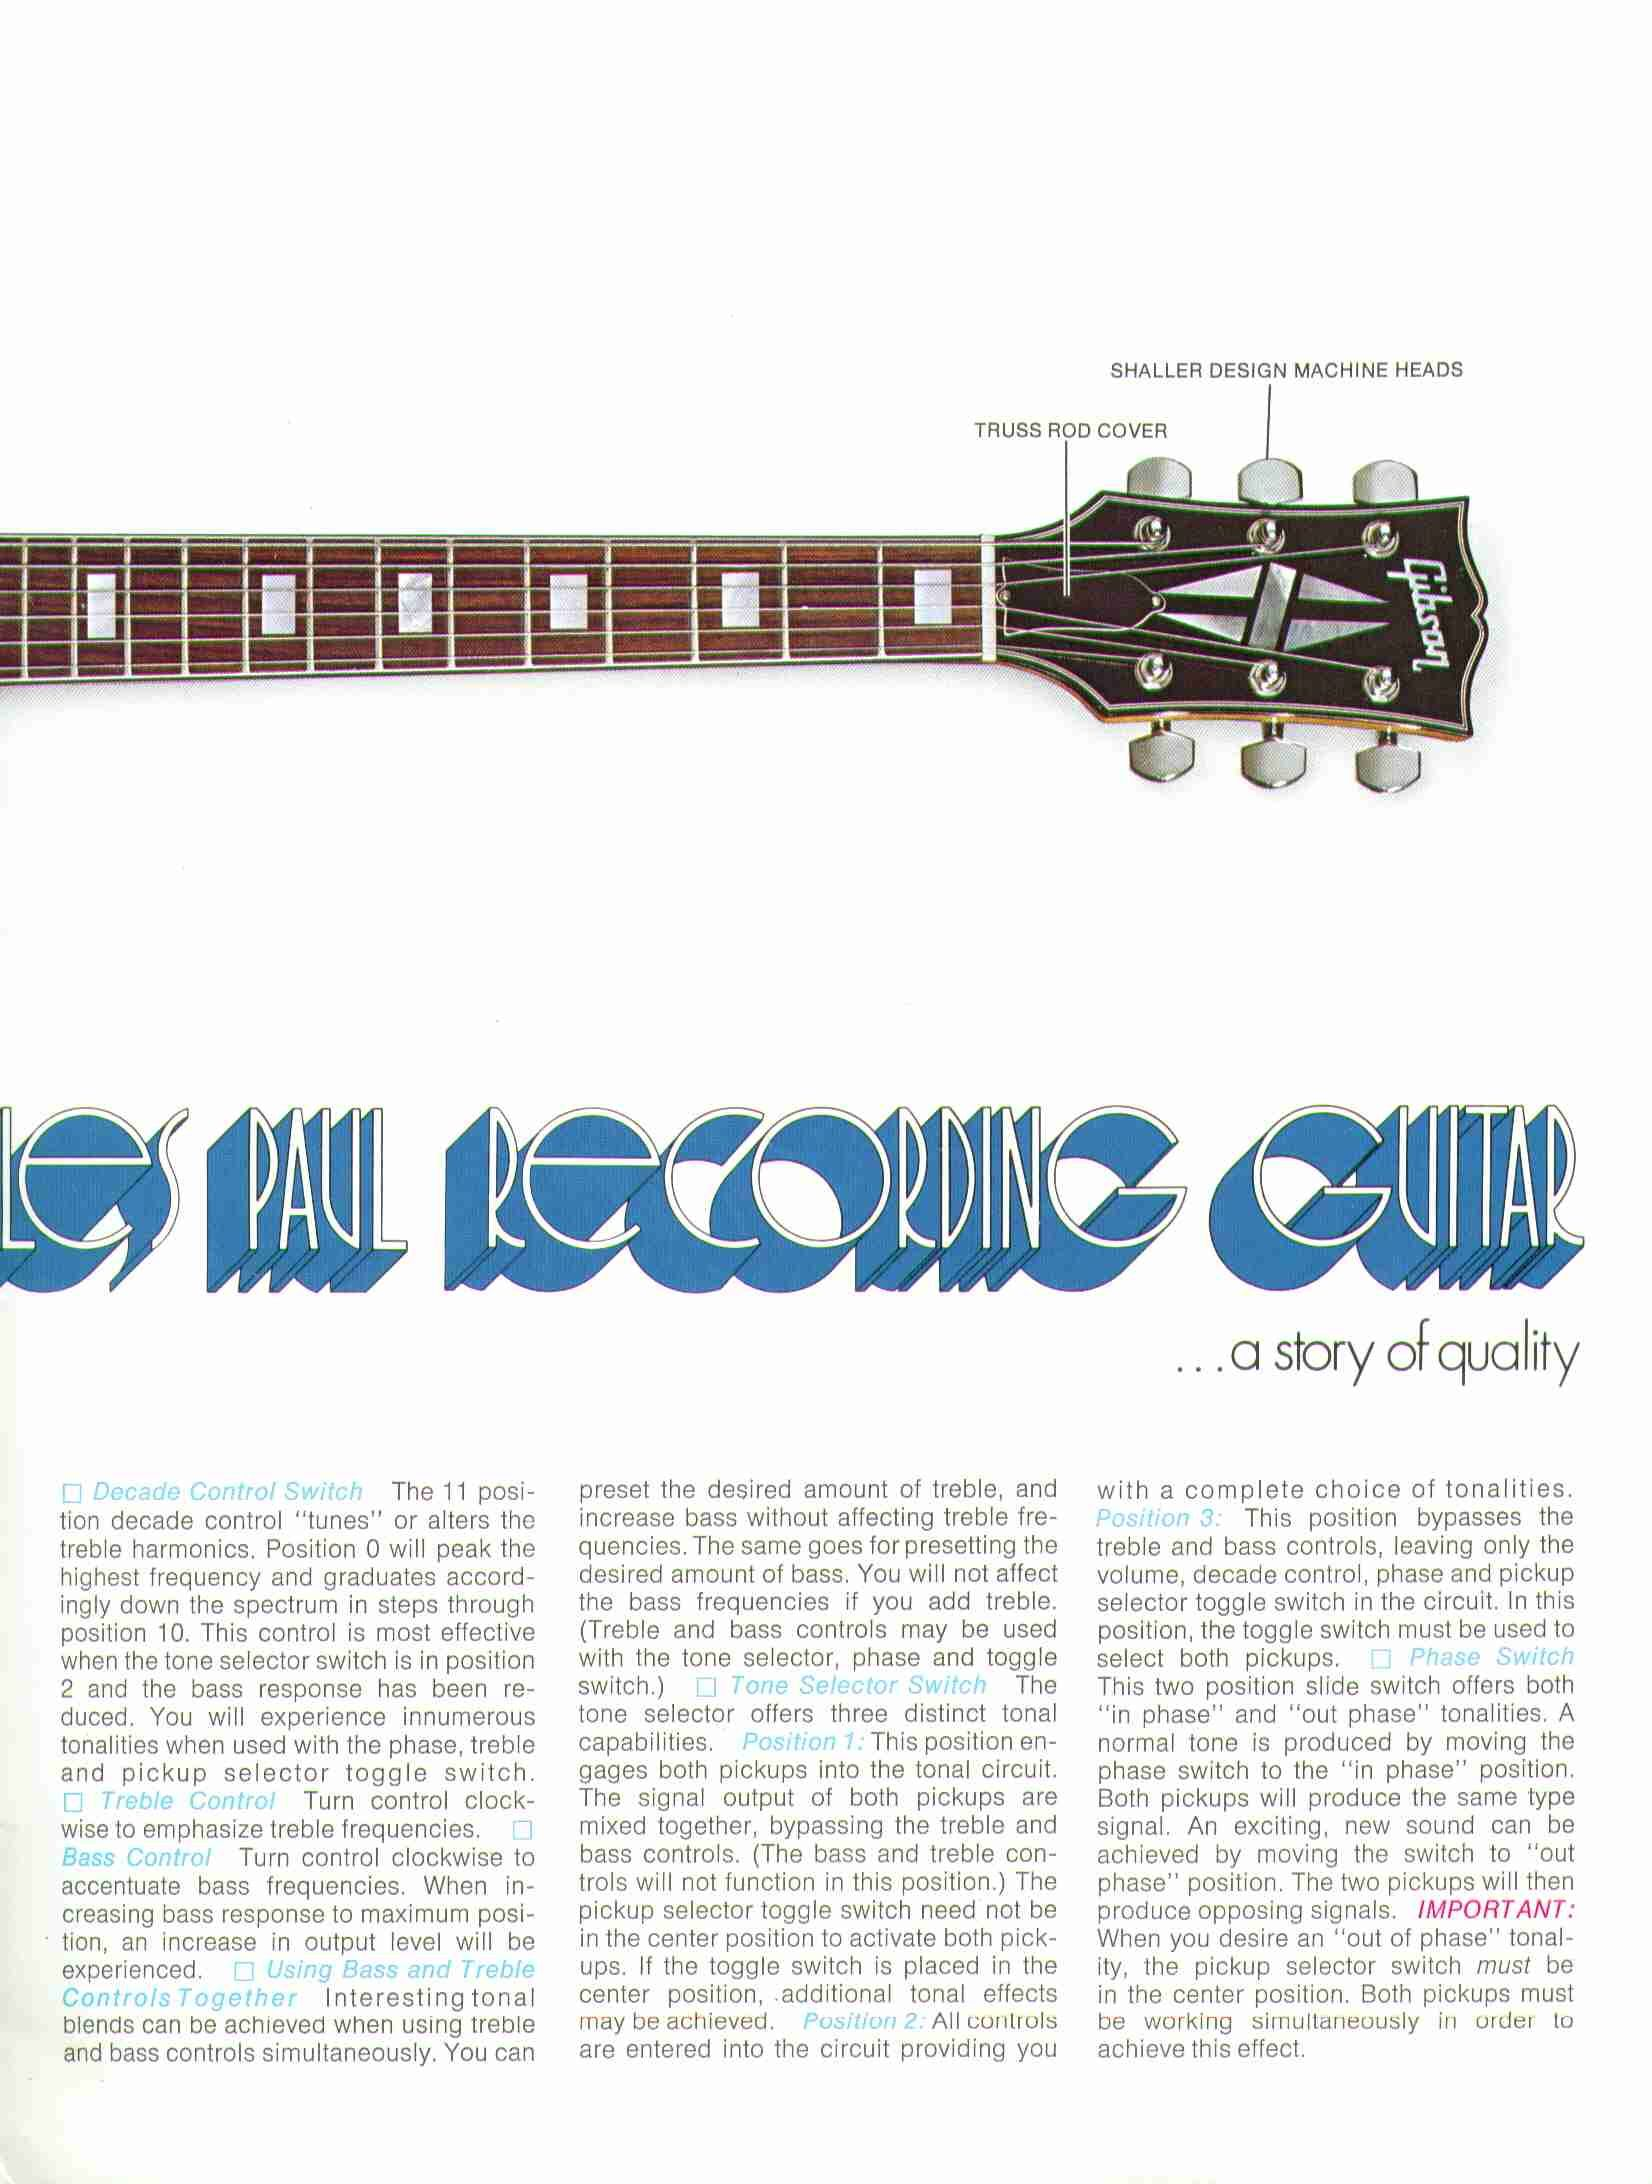 gibson les paul recording wiring diagram for tandem axle trailer with brakes library